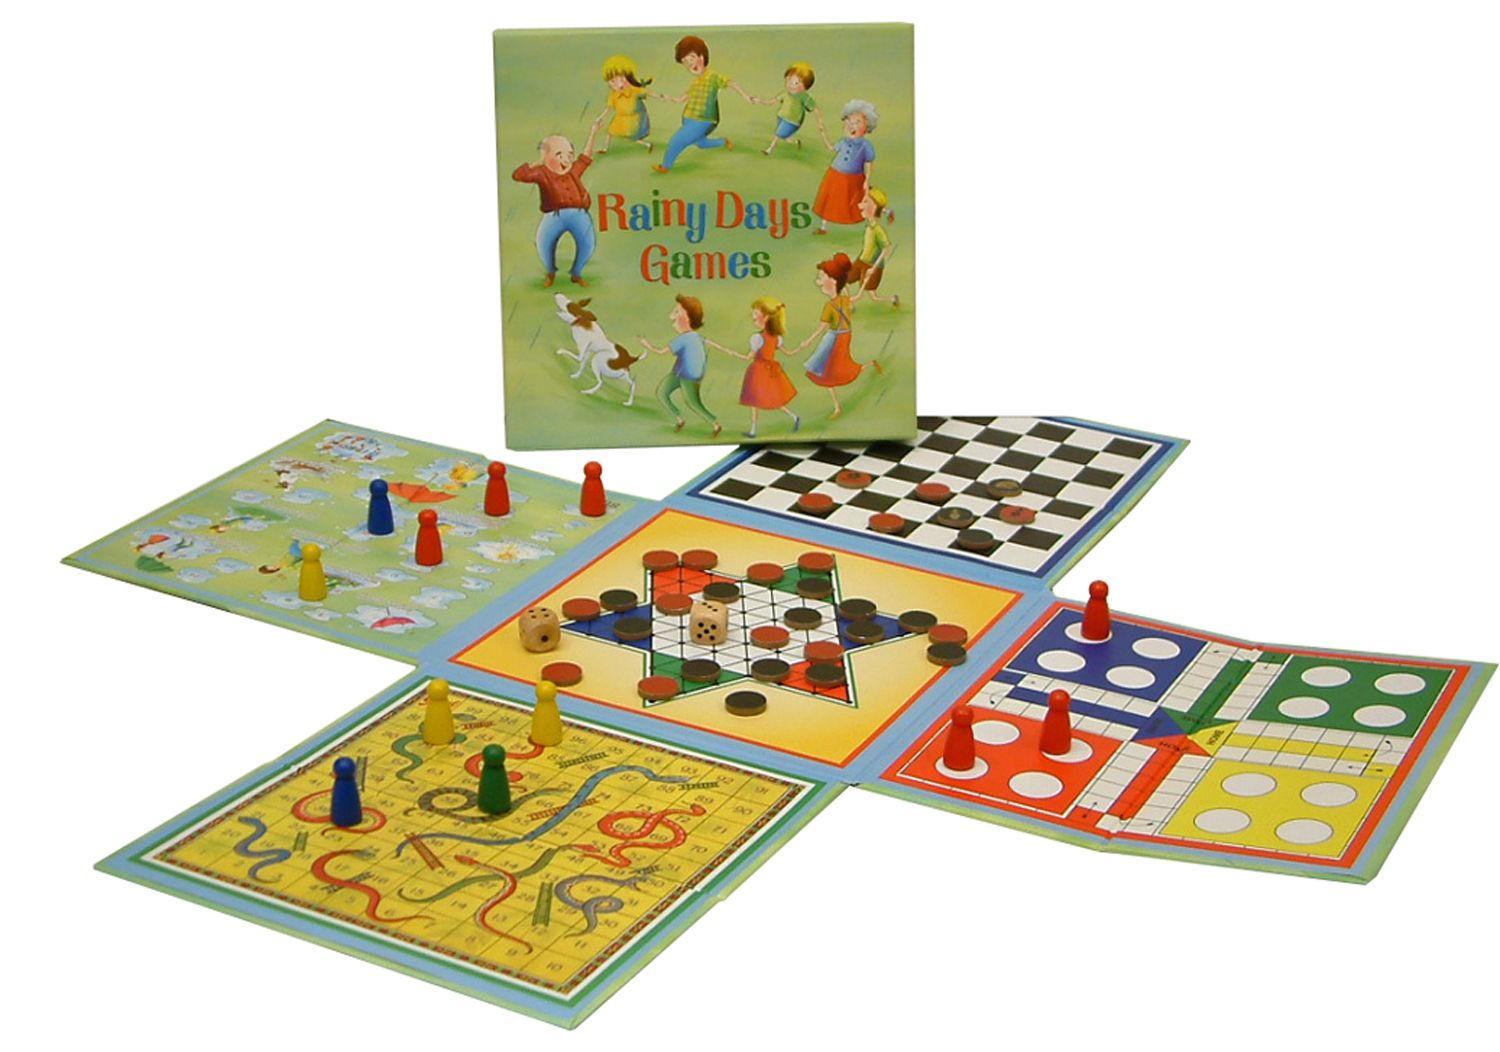 Rainy Days Retro Board Games